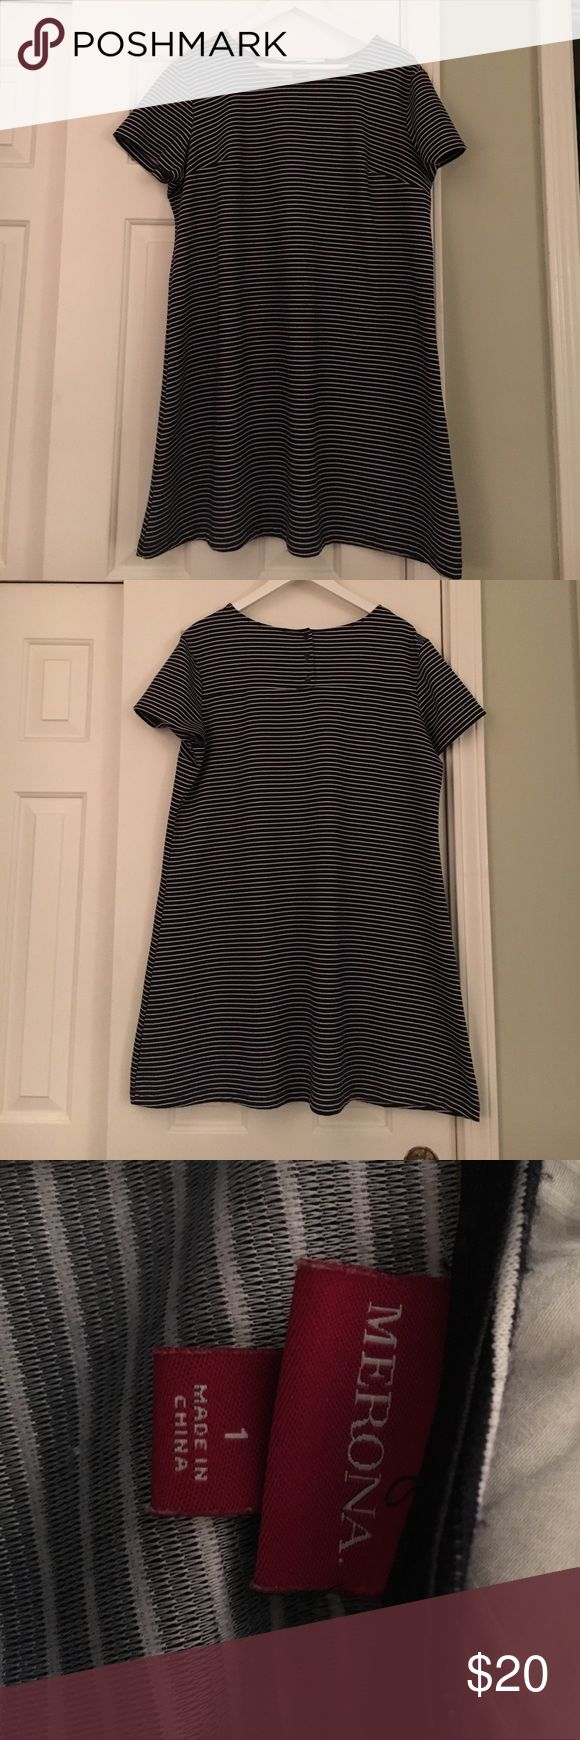 Merona Navy Blue and White Striped Dress Size 1X This Navy and white tee dress is so cute! Thanks so much for checking out this item today! We know that the shipping price is kinda ridiculous, so we suggest you bundle to get more for your money! You will also be saving money as well! Check out our bundle discount below! 💰reasonable offers welcome!  Please do not leave rude or unkind comments! Merona Dresses